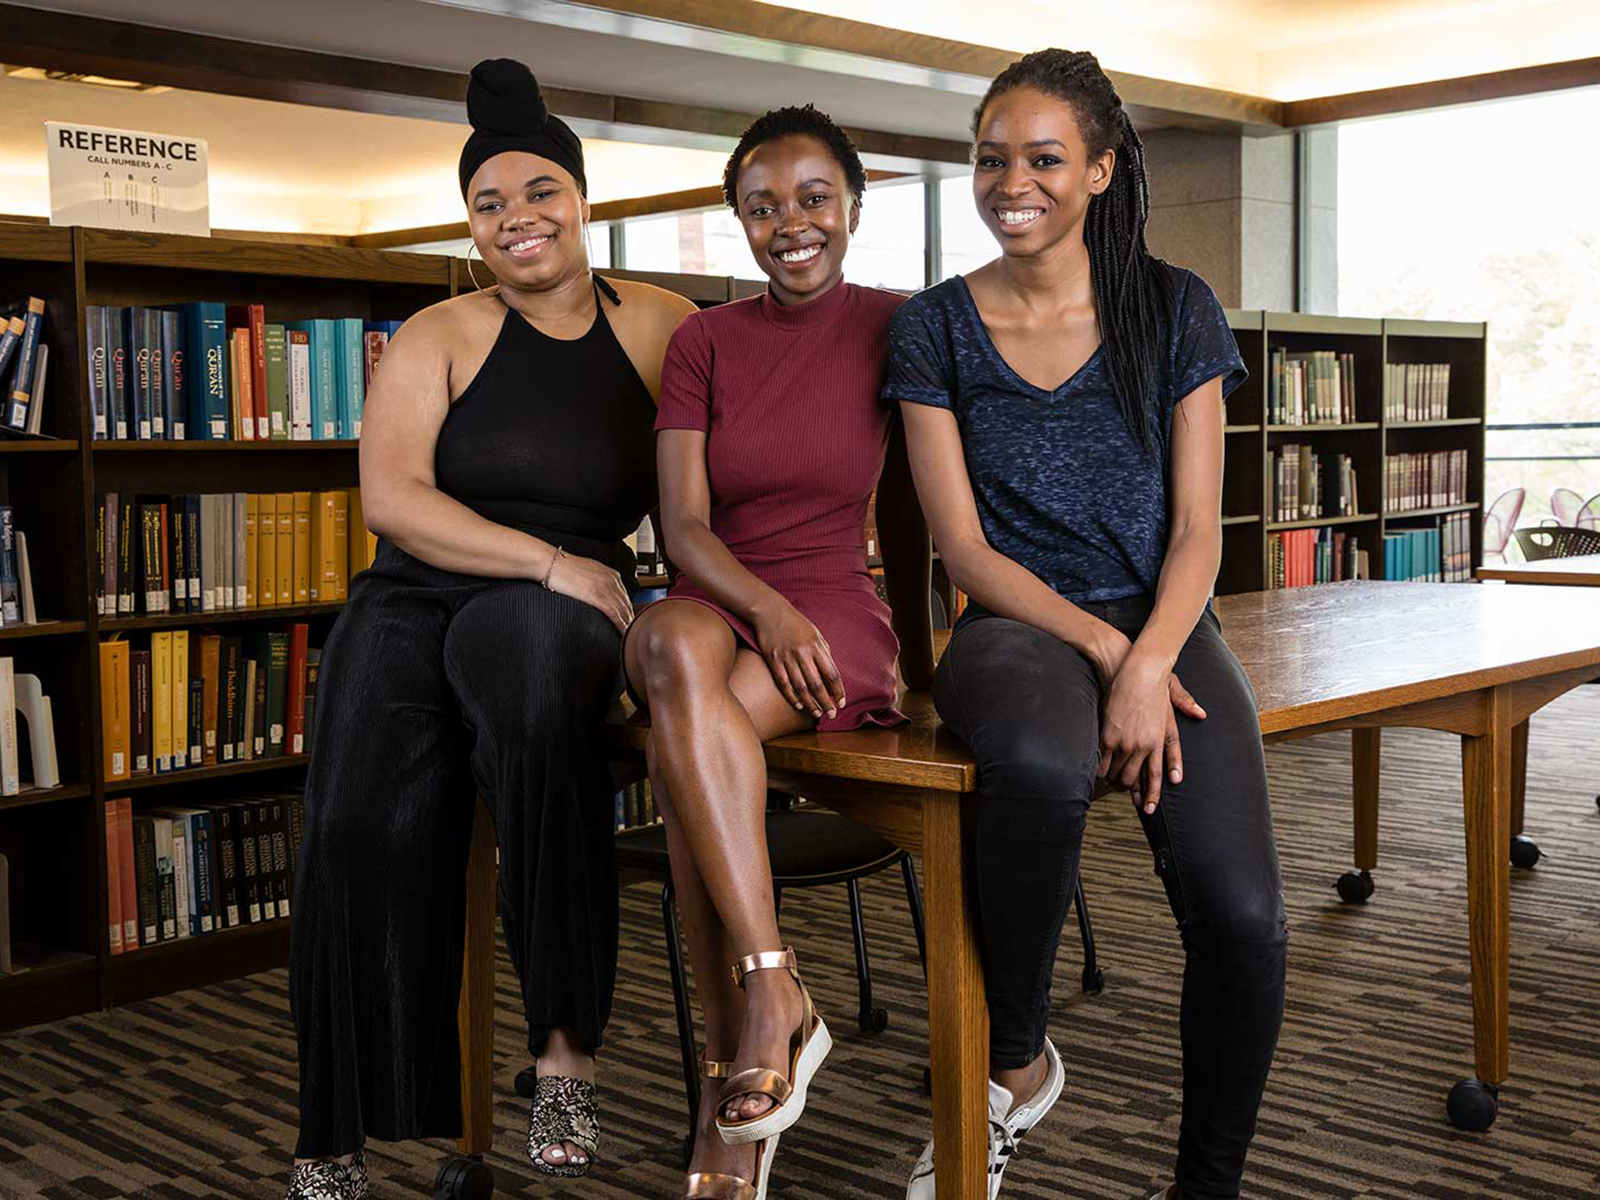 Three Black woman sitting on a table in a library smiling